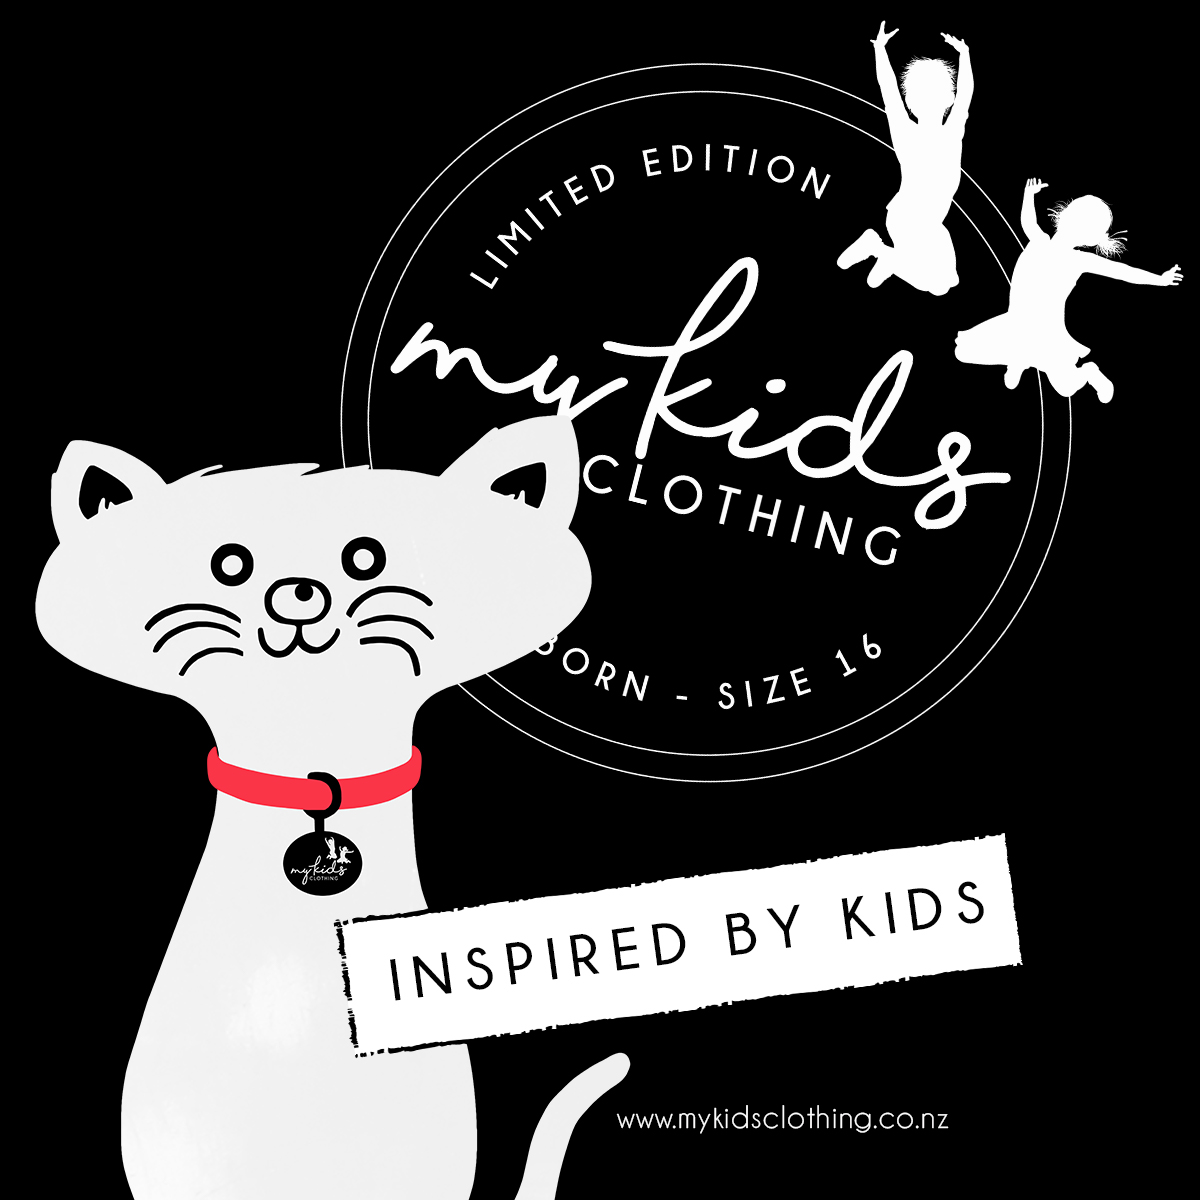 Cat-Tee - Front and Back Cat 'Inspired By Kids'Available in Sizes 2 - 16 www.mykidsclothing.co.nz